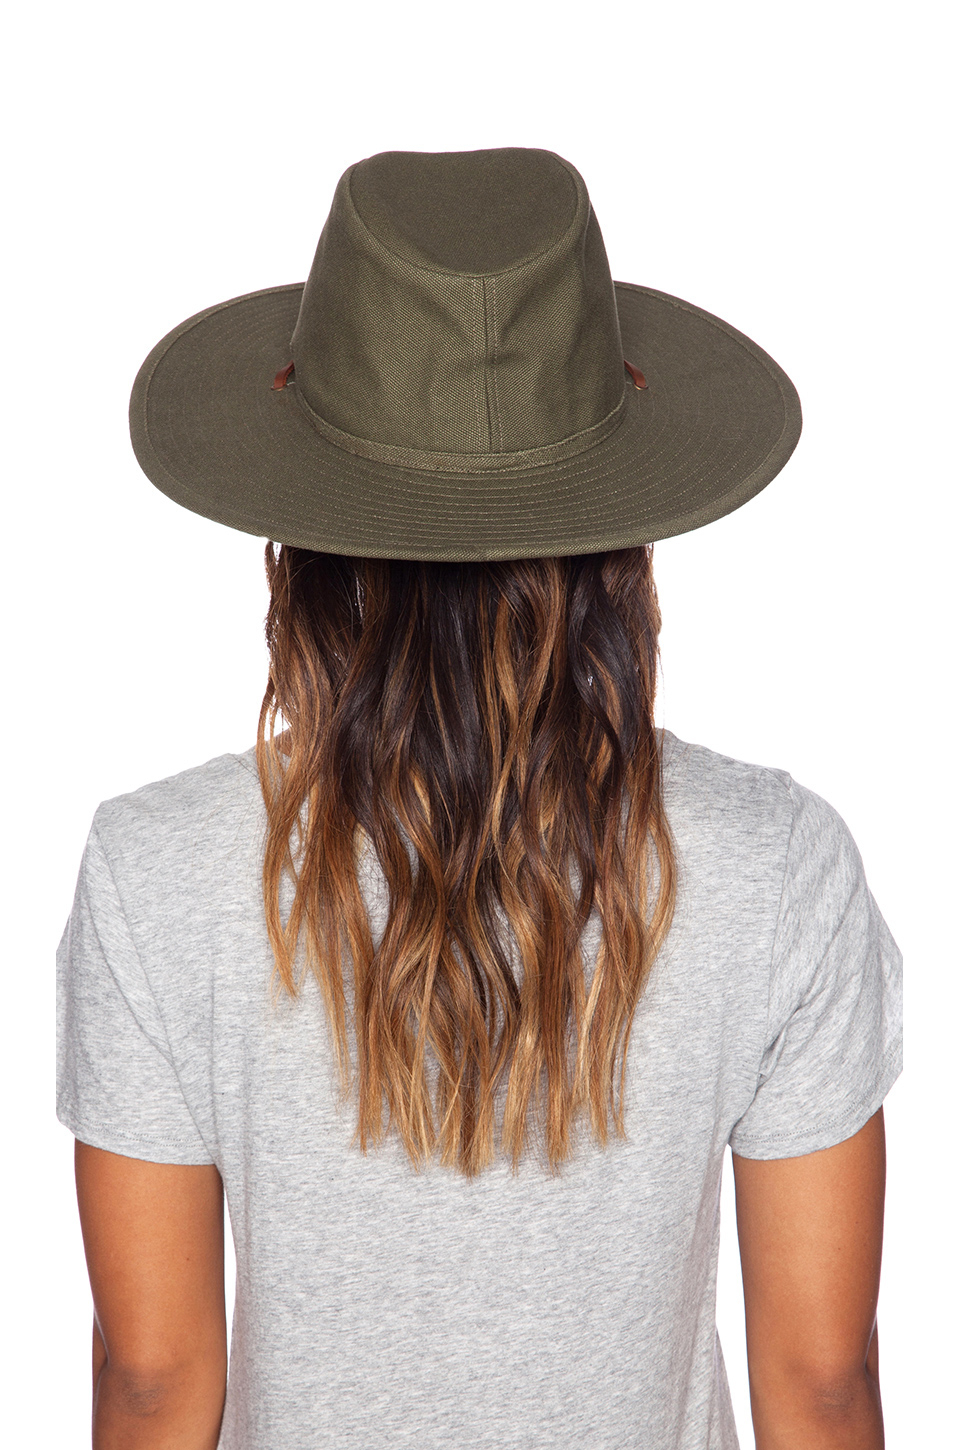 ... shopping lyst brixton ranger hat in green for men e8171 42bba 8a07d954b81